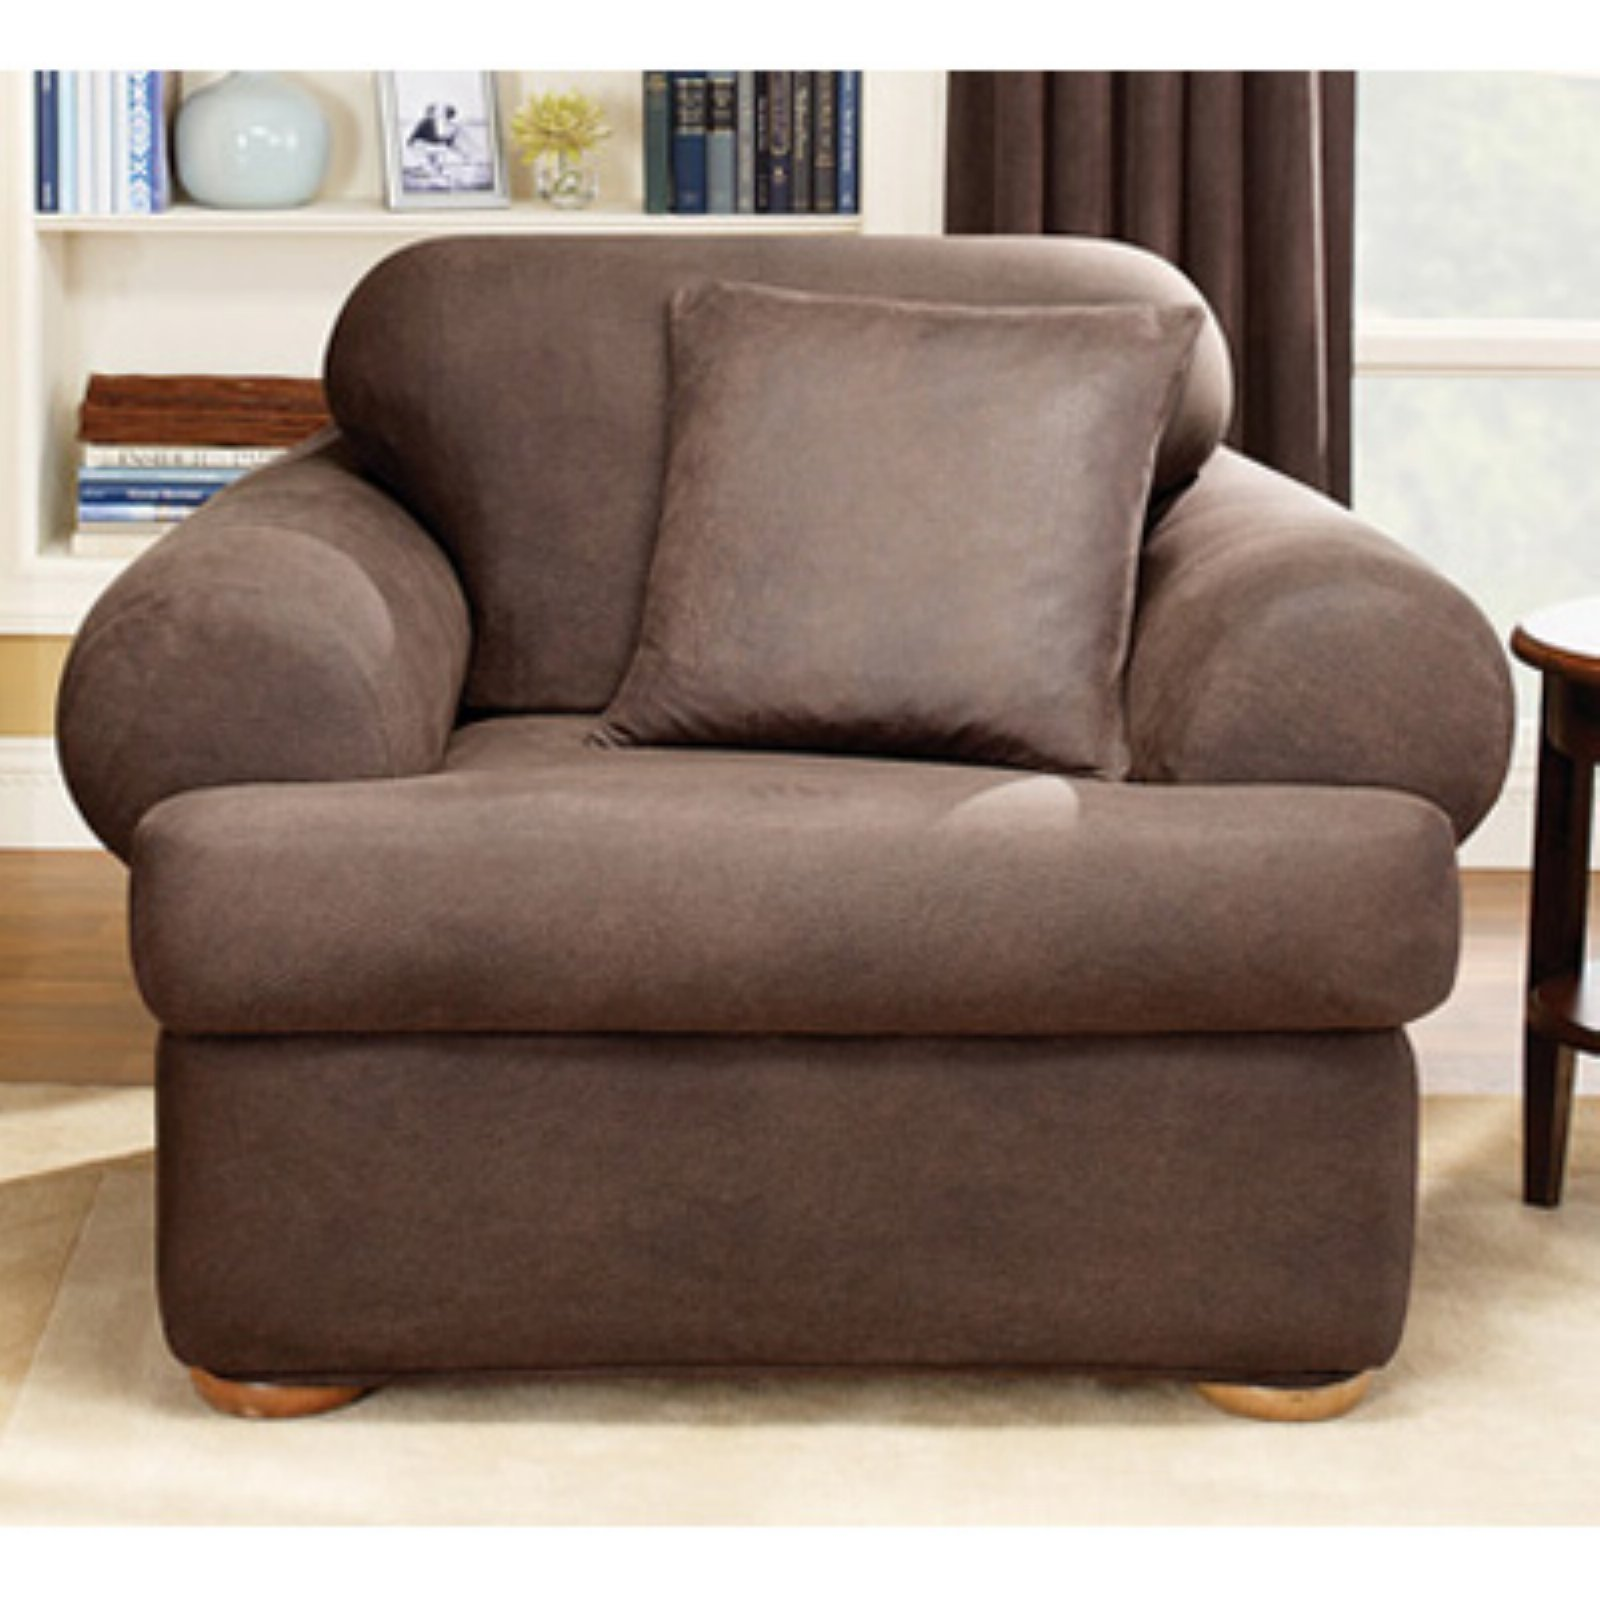 Sure Fit Stretch Leather 2 Piece T Cushion Chair Slipcover Brown